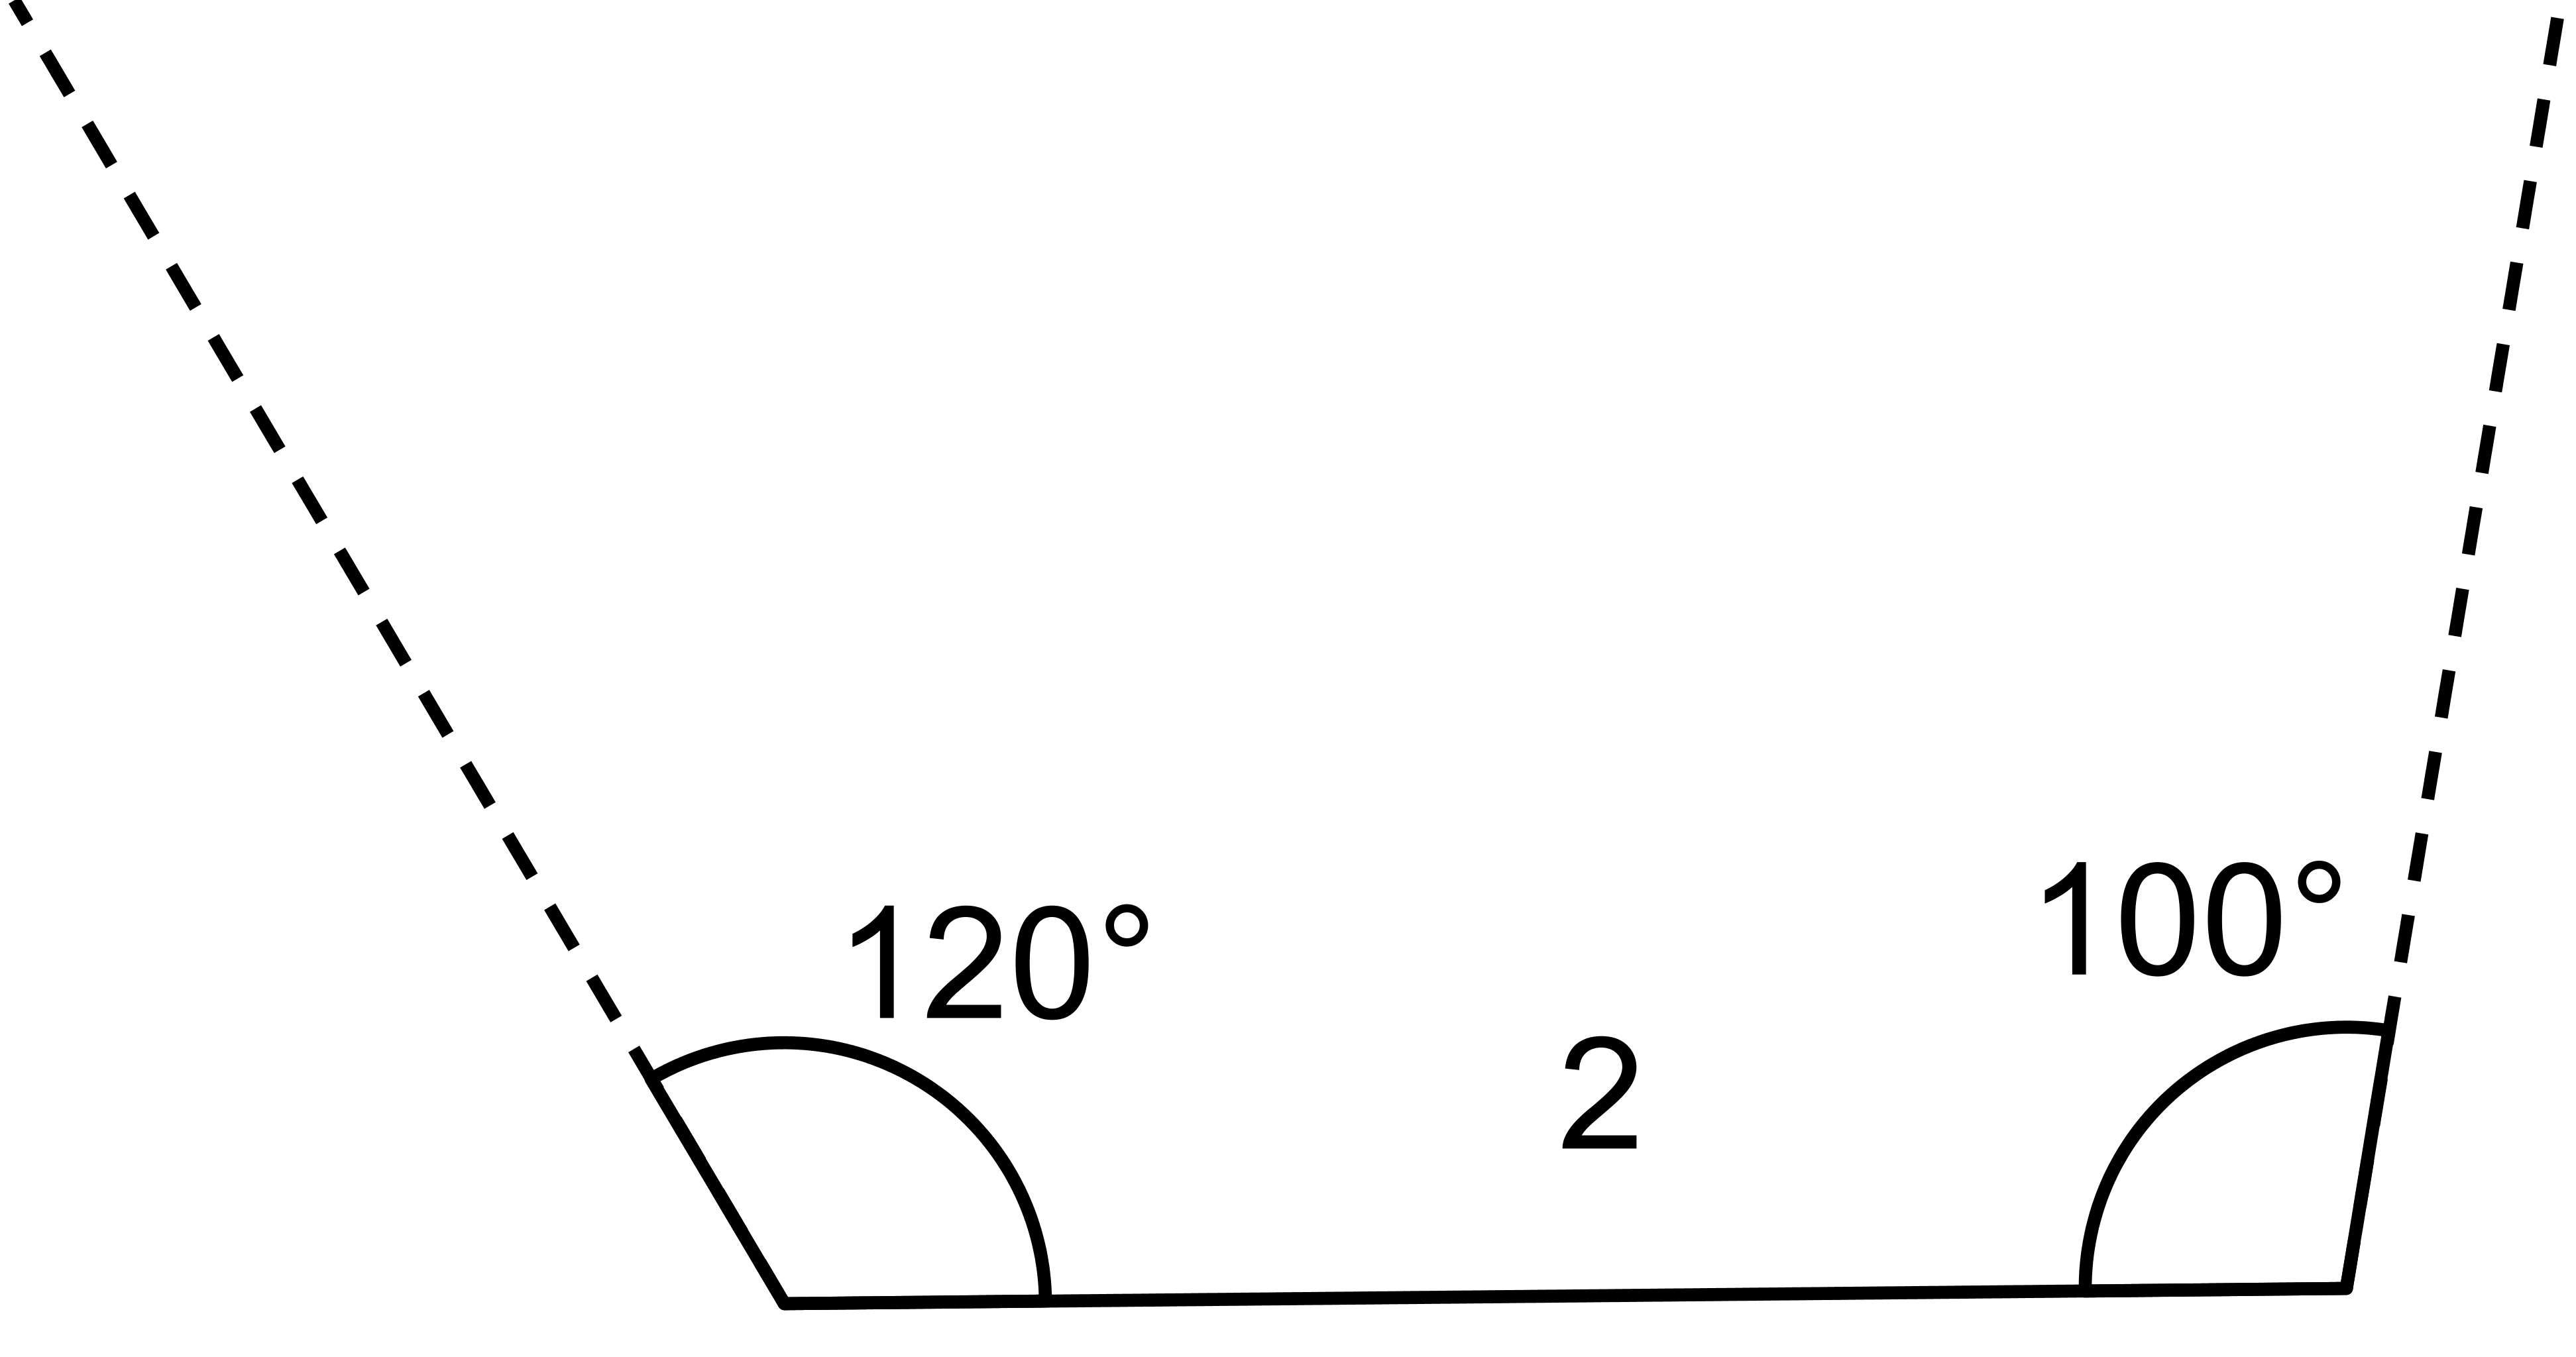 In the figure a horizontal line segment is drawn and labeled 2. On the left end of the line segment, a dashed line is drawn upward and to the left. The angle formed between the dashed line and the horizontal line is labeled 120 degrees. On the right end of the horizontal line, a dashed line is drawn upward and to the right. The angle formed between the dashed line and horizontal line is labeled 100 degrees.